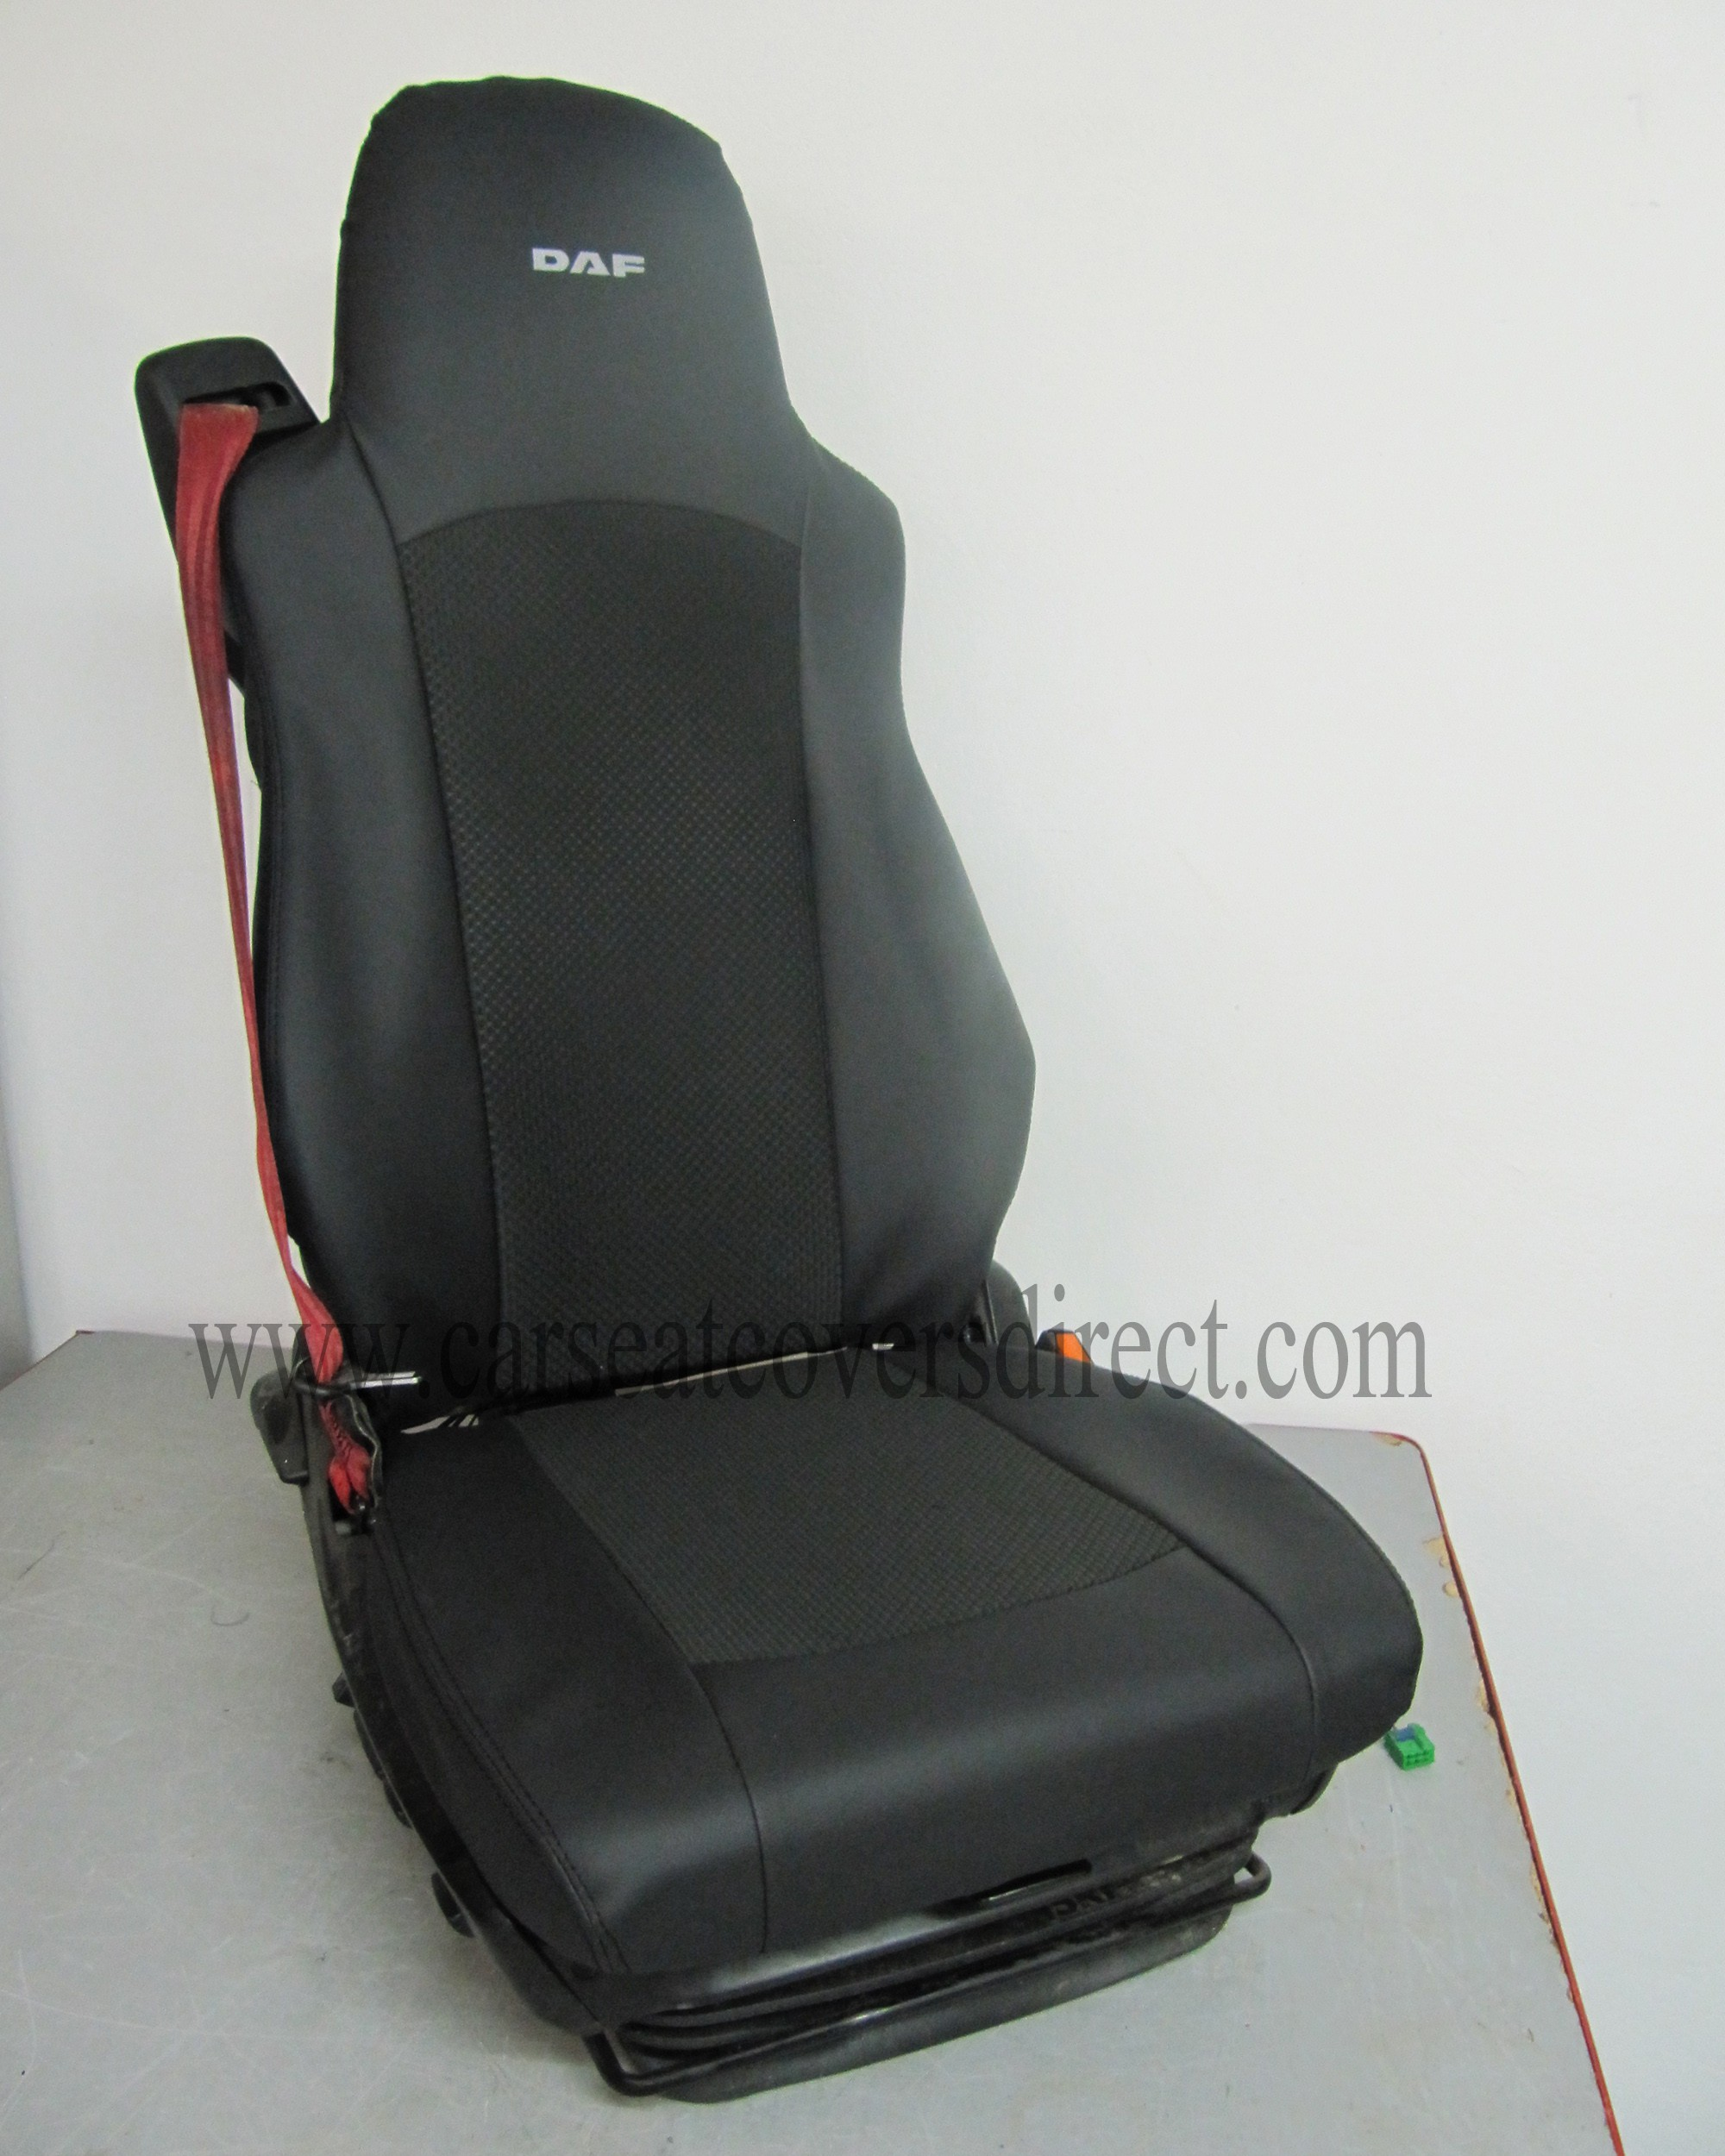 DAF LF Truck Seat Covers